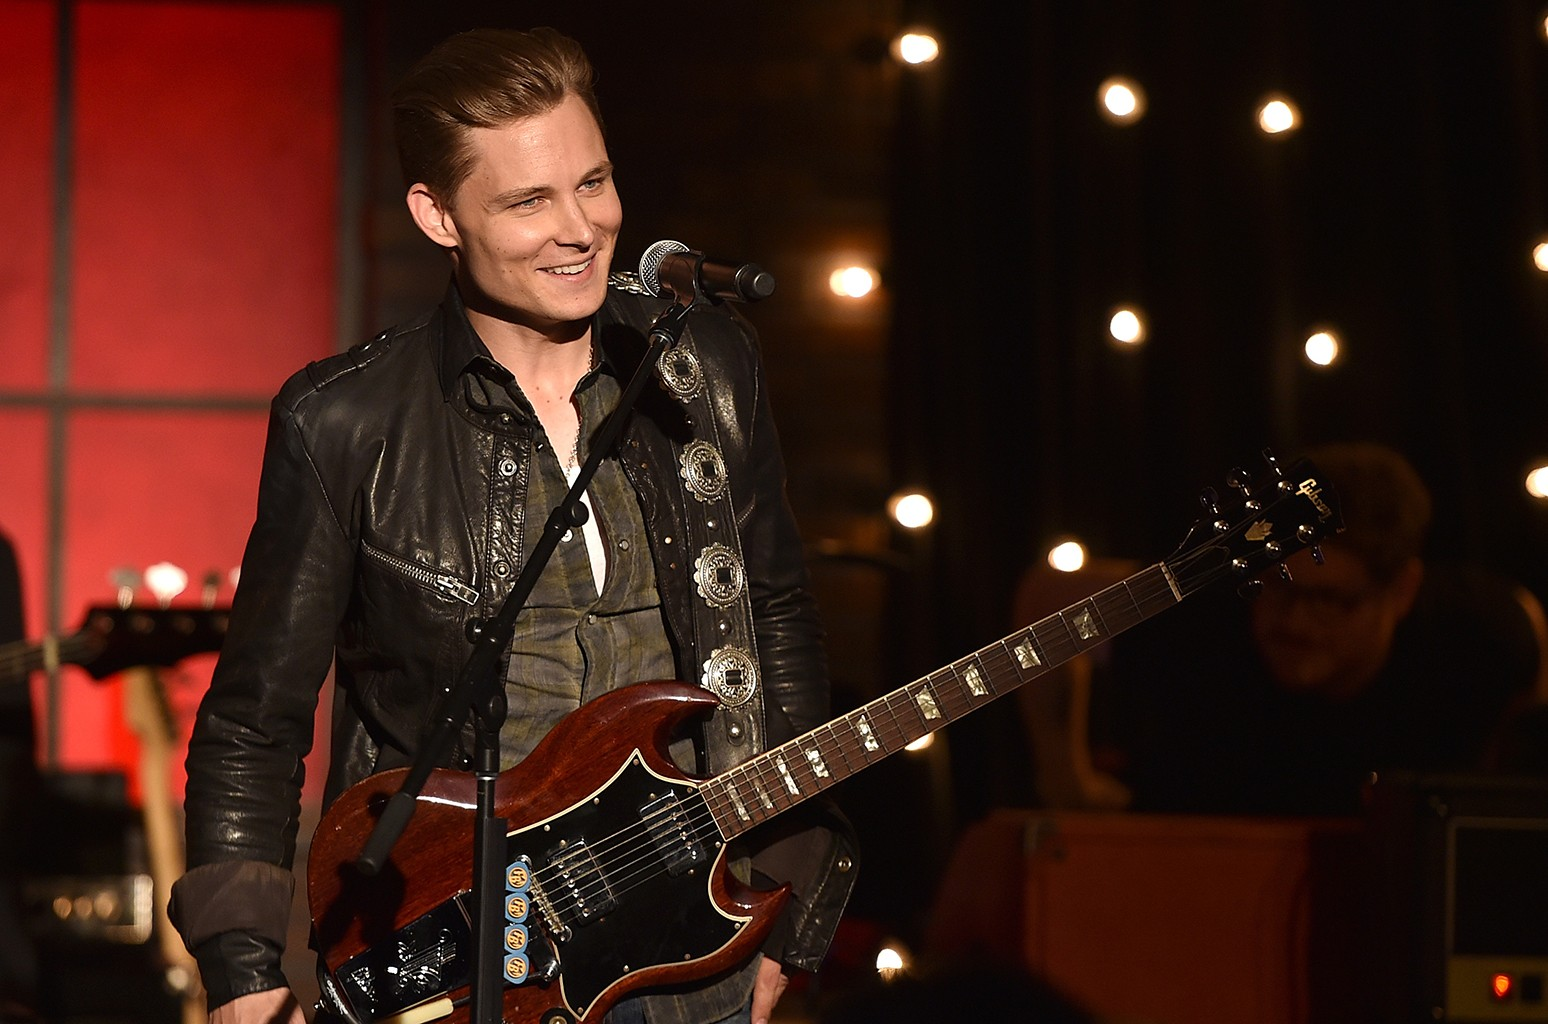 Frankie Ballard Christmas Concert 2021 Playlist Frankie Ballard Brings Nashville To L A S Sunset Strip What To Expect At Your First Country Concert Billboard Billboard